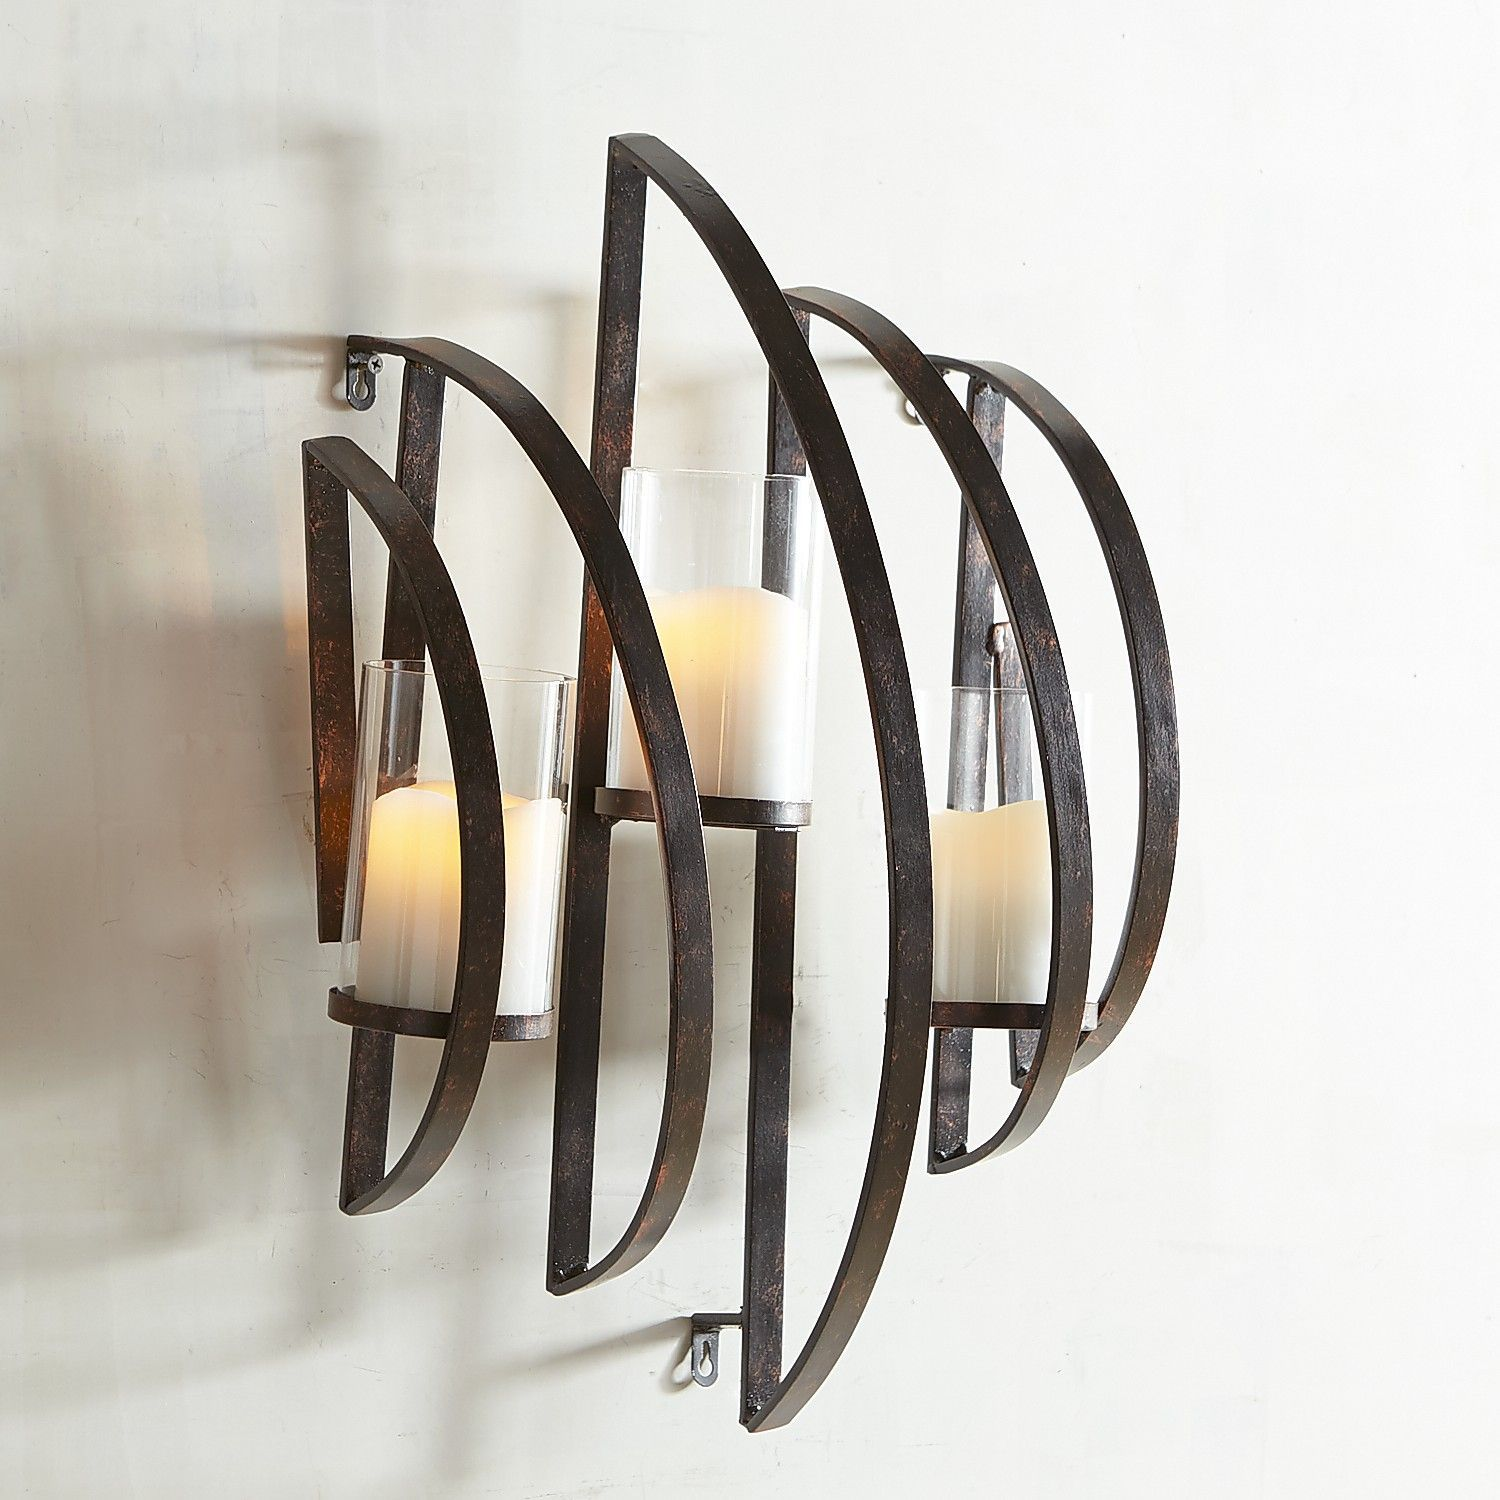 Zander black metal candle holder wall sconce black metal wall